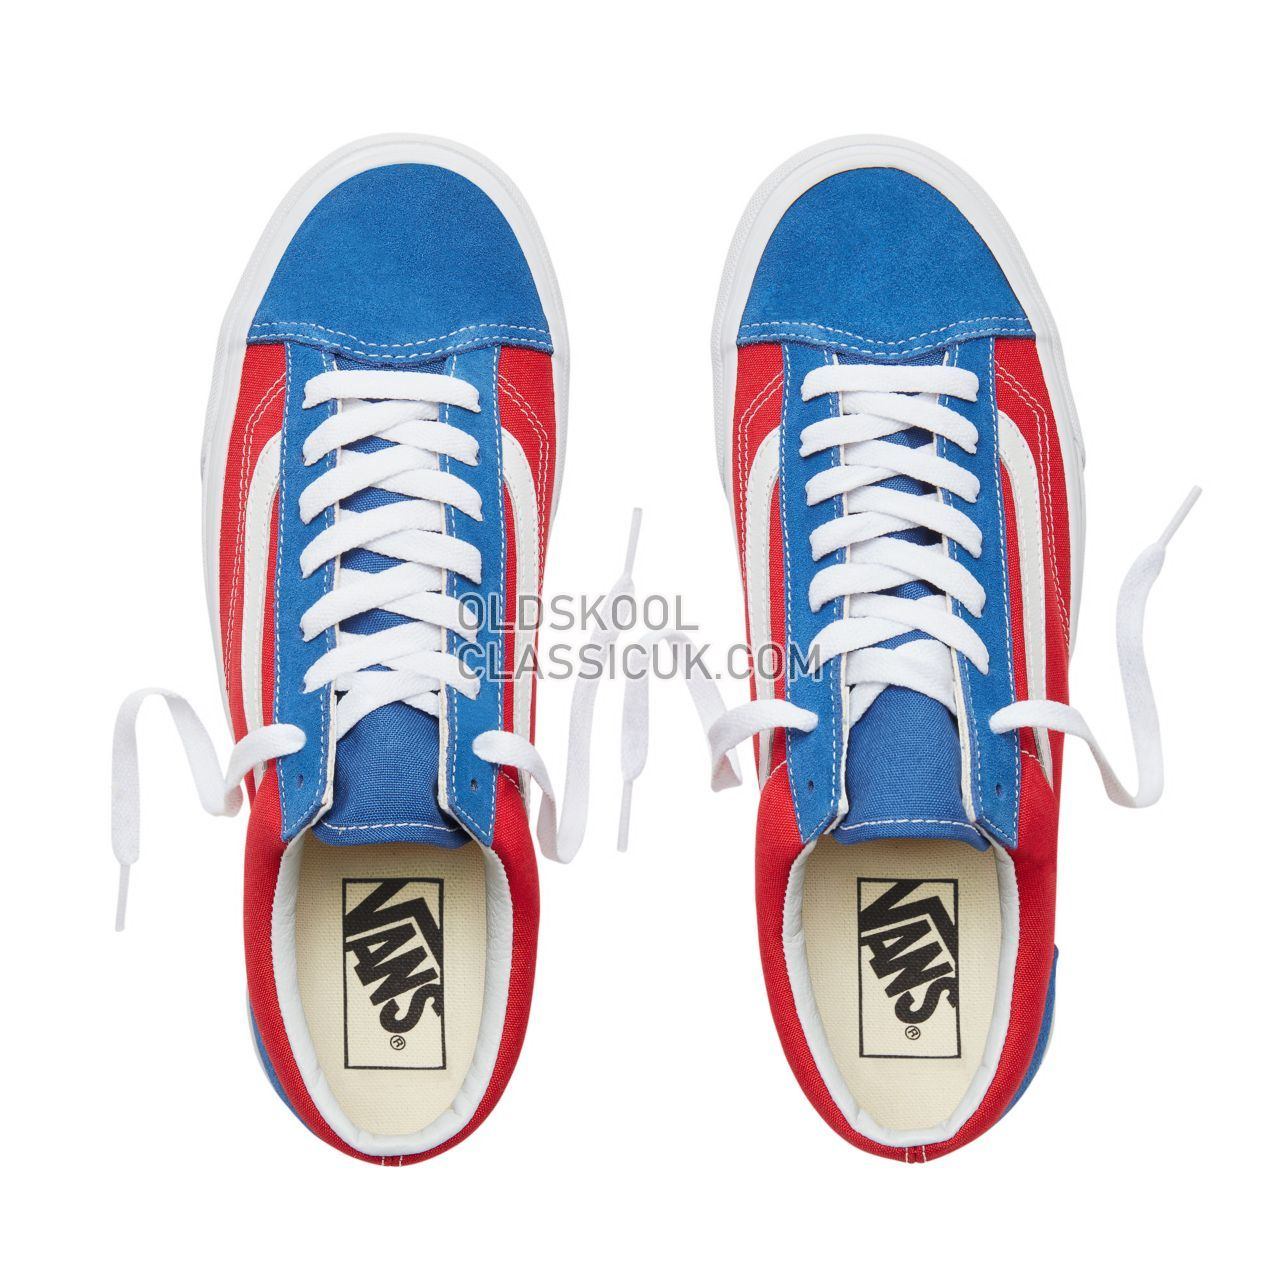 Vans Suede BMX Checkerboard Style 36 Sneakers Mens (Bmx Checkerboard) True Blue/Red VA3DZ3U8H Shoes